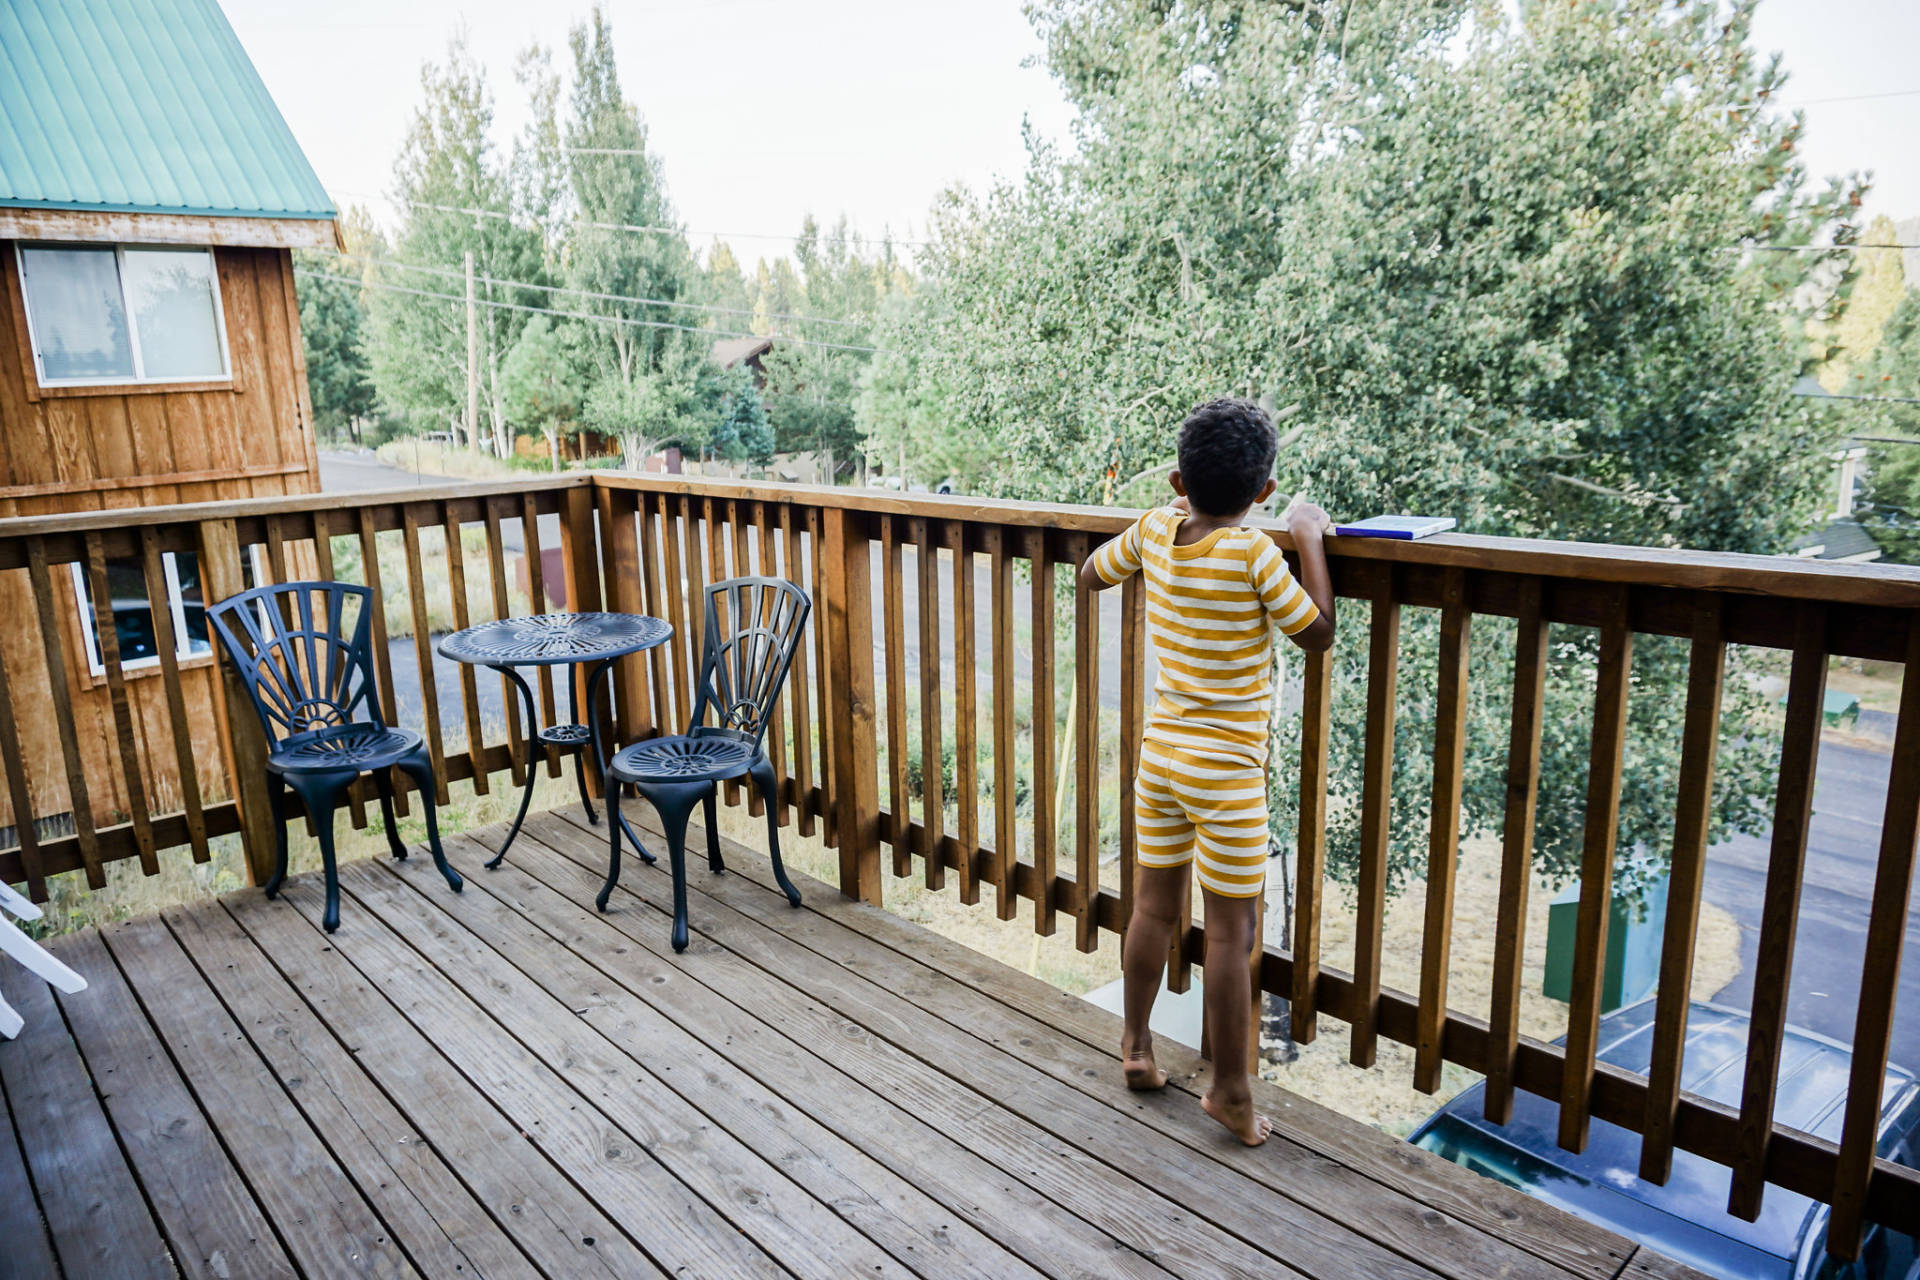 Weekend Getaway To Truckee CA With VRBO: we decided to getaway for one last hurrah before the kids head back to school in a few weeks! VRBO was the perfect option for us! We had the best time and the process to book was simple and easy! Not to mention, they are available to help 24/7.